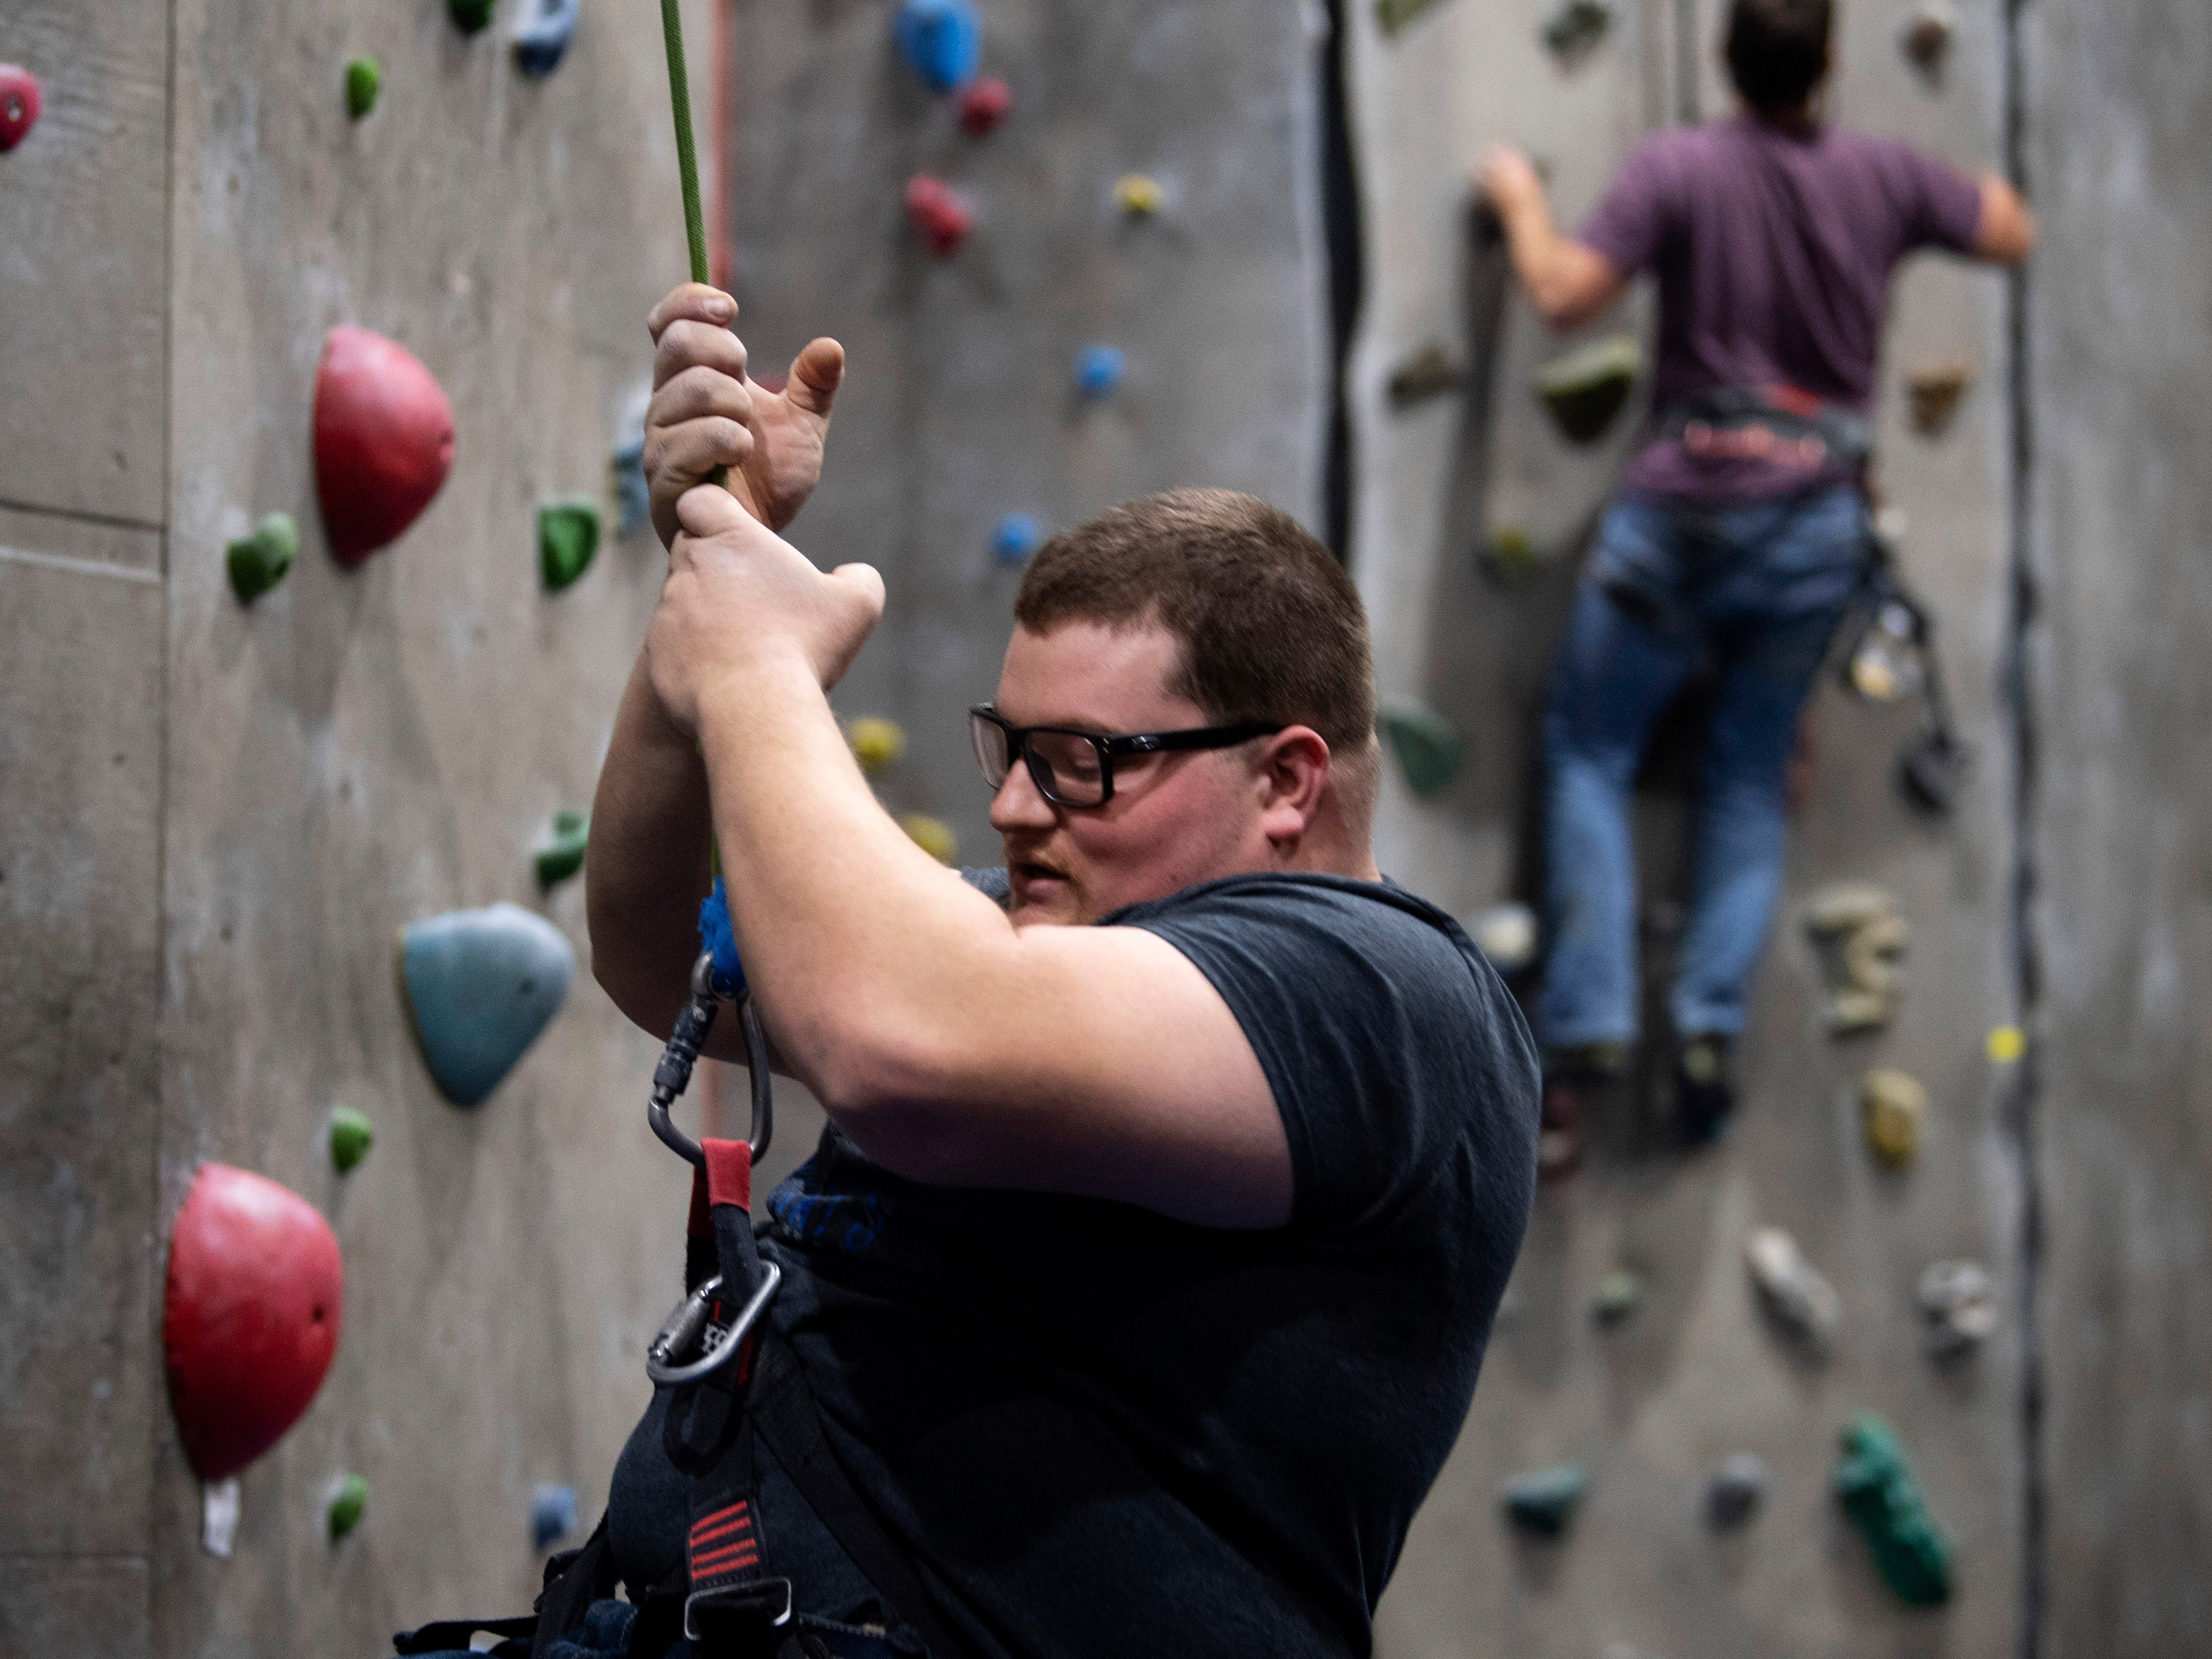 Bradley West of Morganfield, Ky., descends from the auto-belay climbing wall at Vertical eXcape at 1315 N. Royal Avenue in Evansville Friday evening.